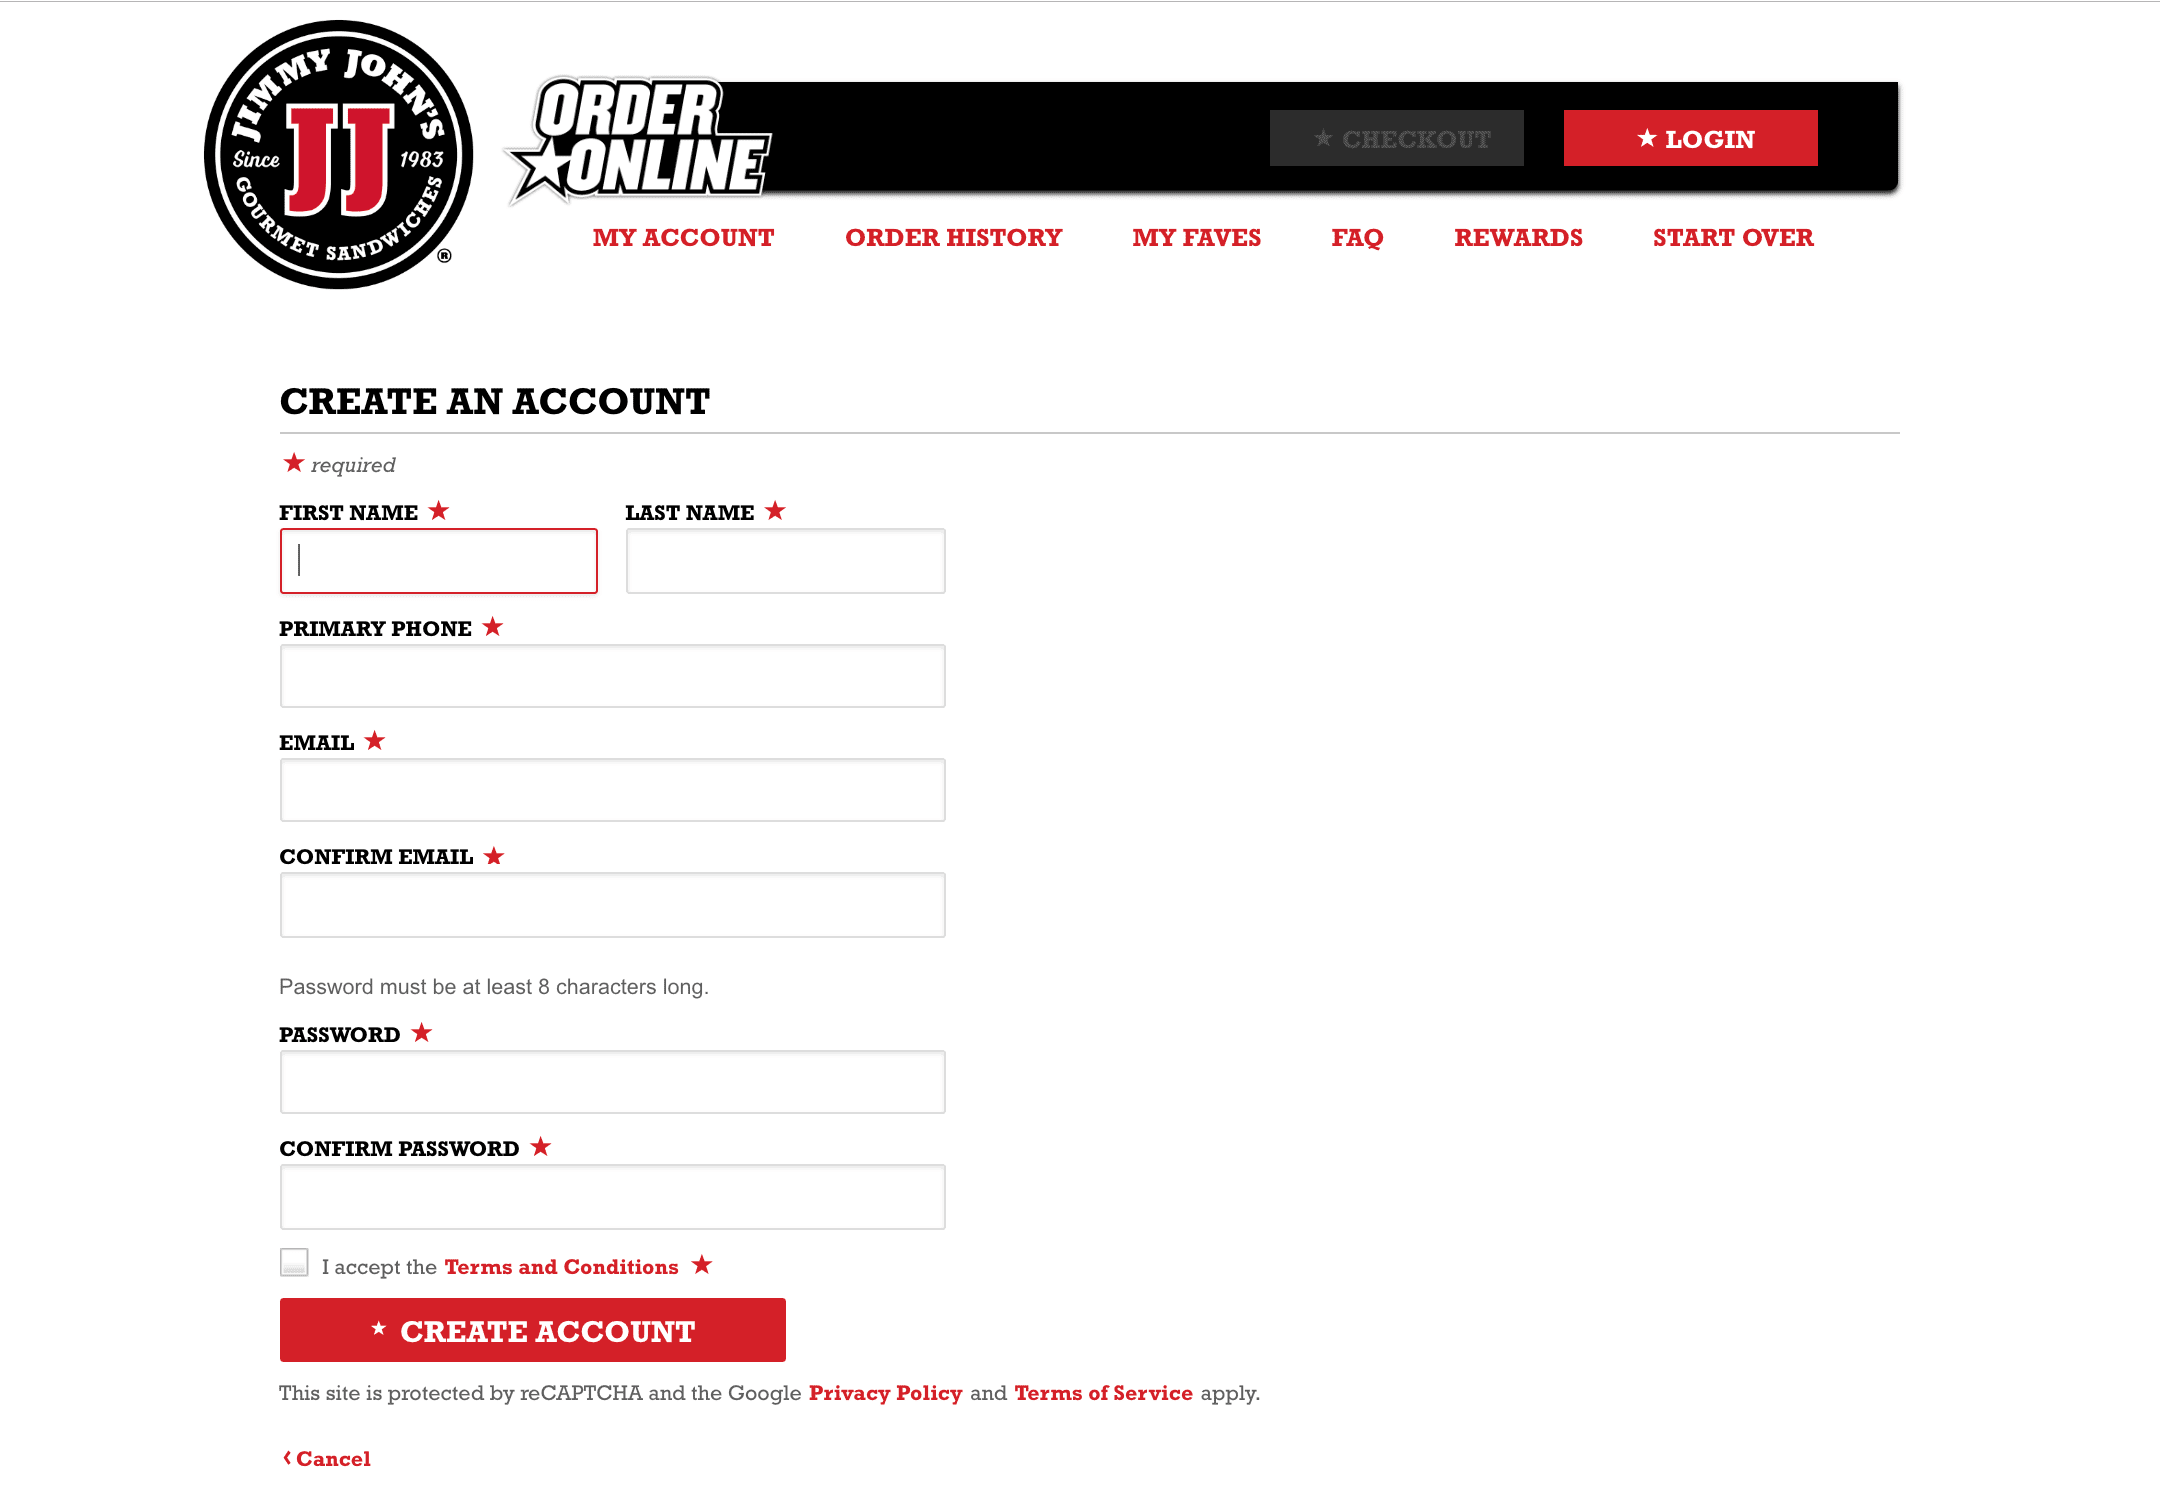 The Jimmy John's account sign up form, which includes a mandatory phone field.